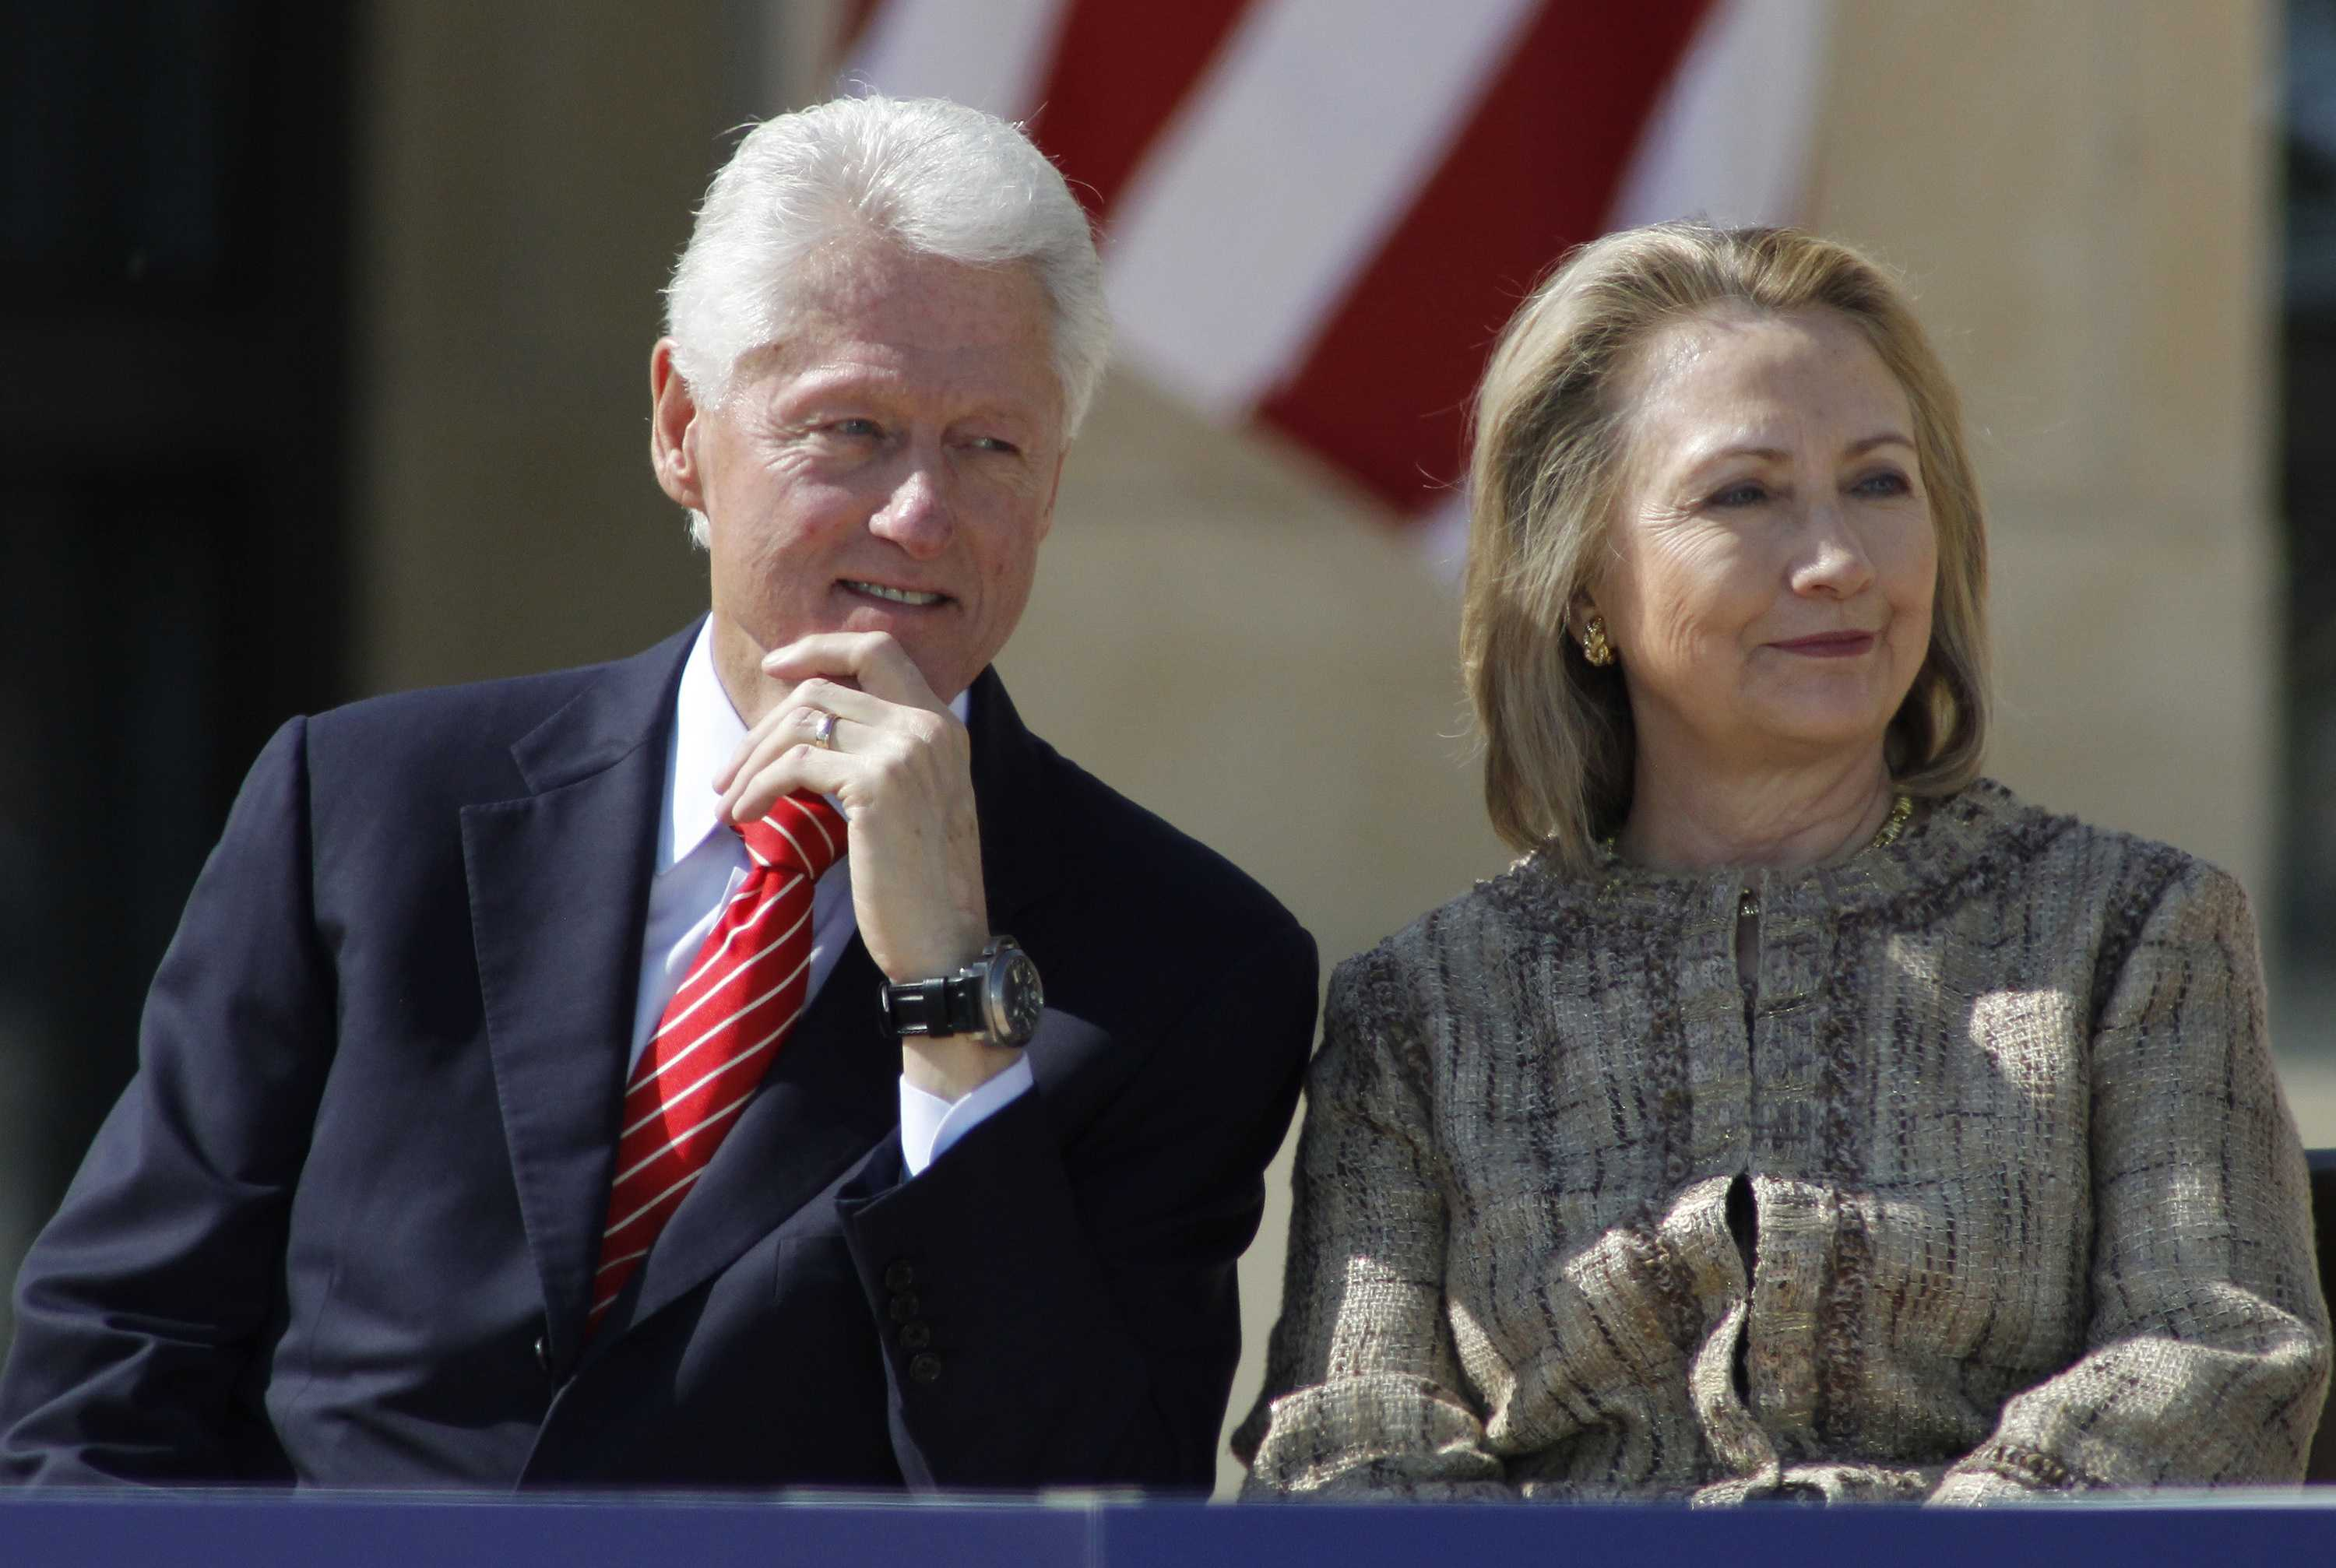 Bill Clinton and Hilary Clinton at a ceremony.